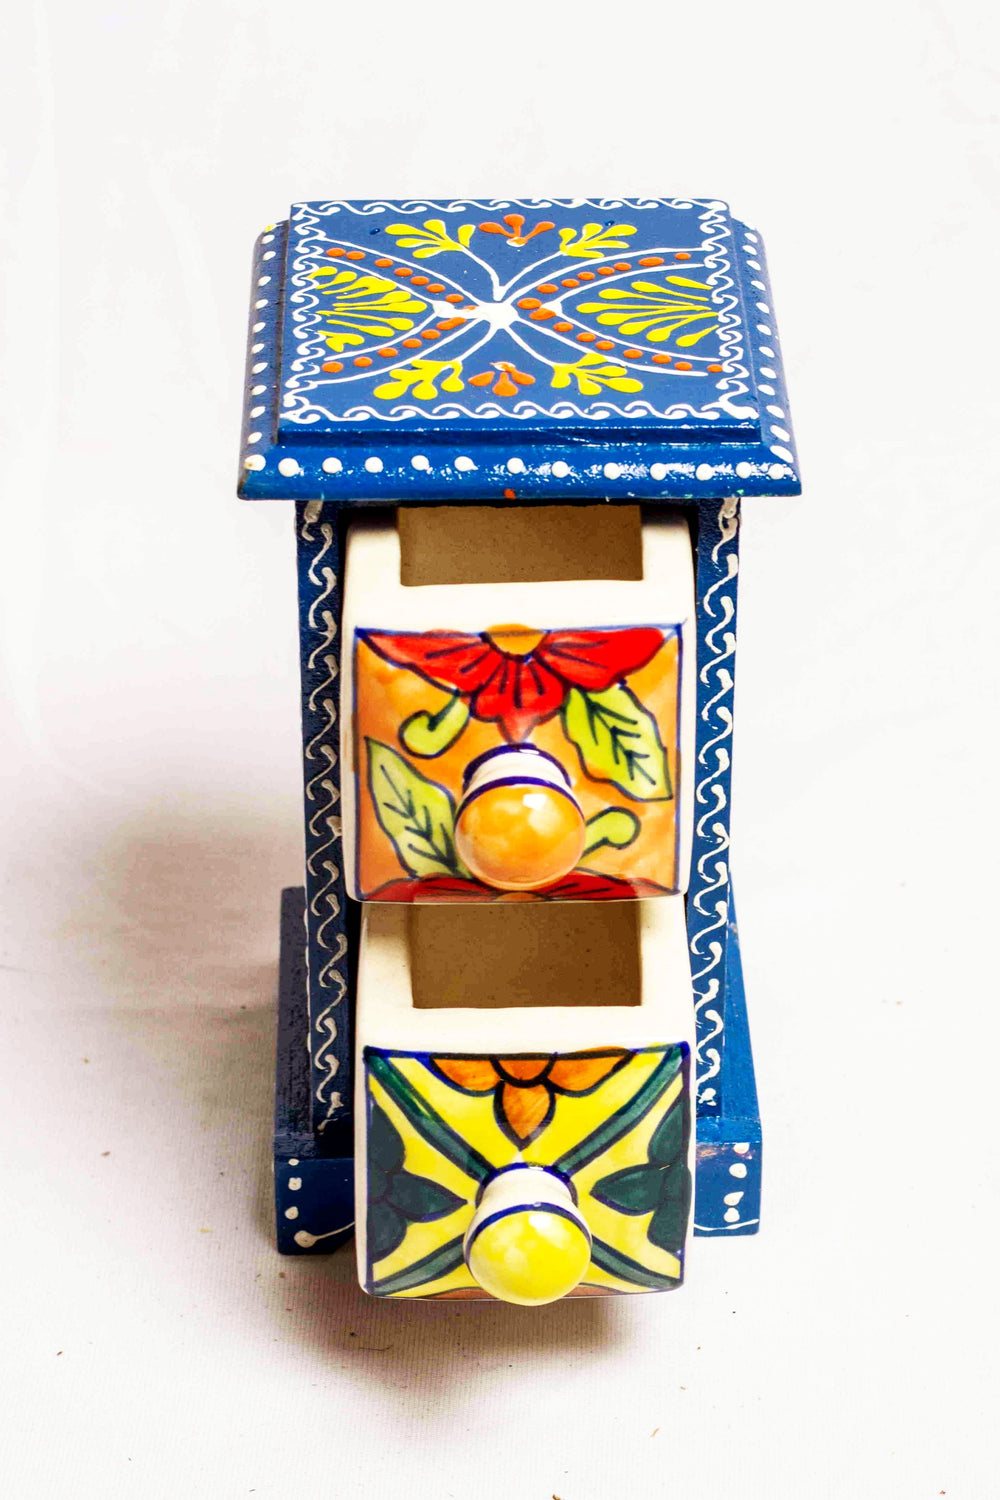 Two drawers in a dark blue framed wooden box with painted motifs, with 2 ceramic drawers